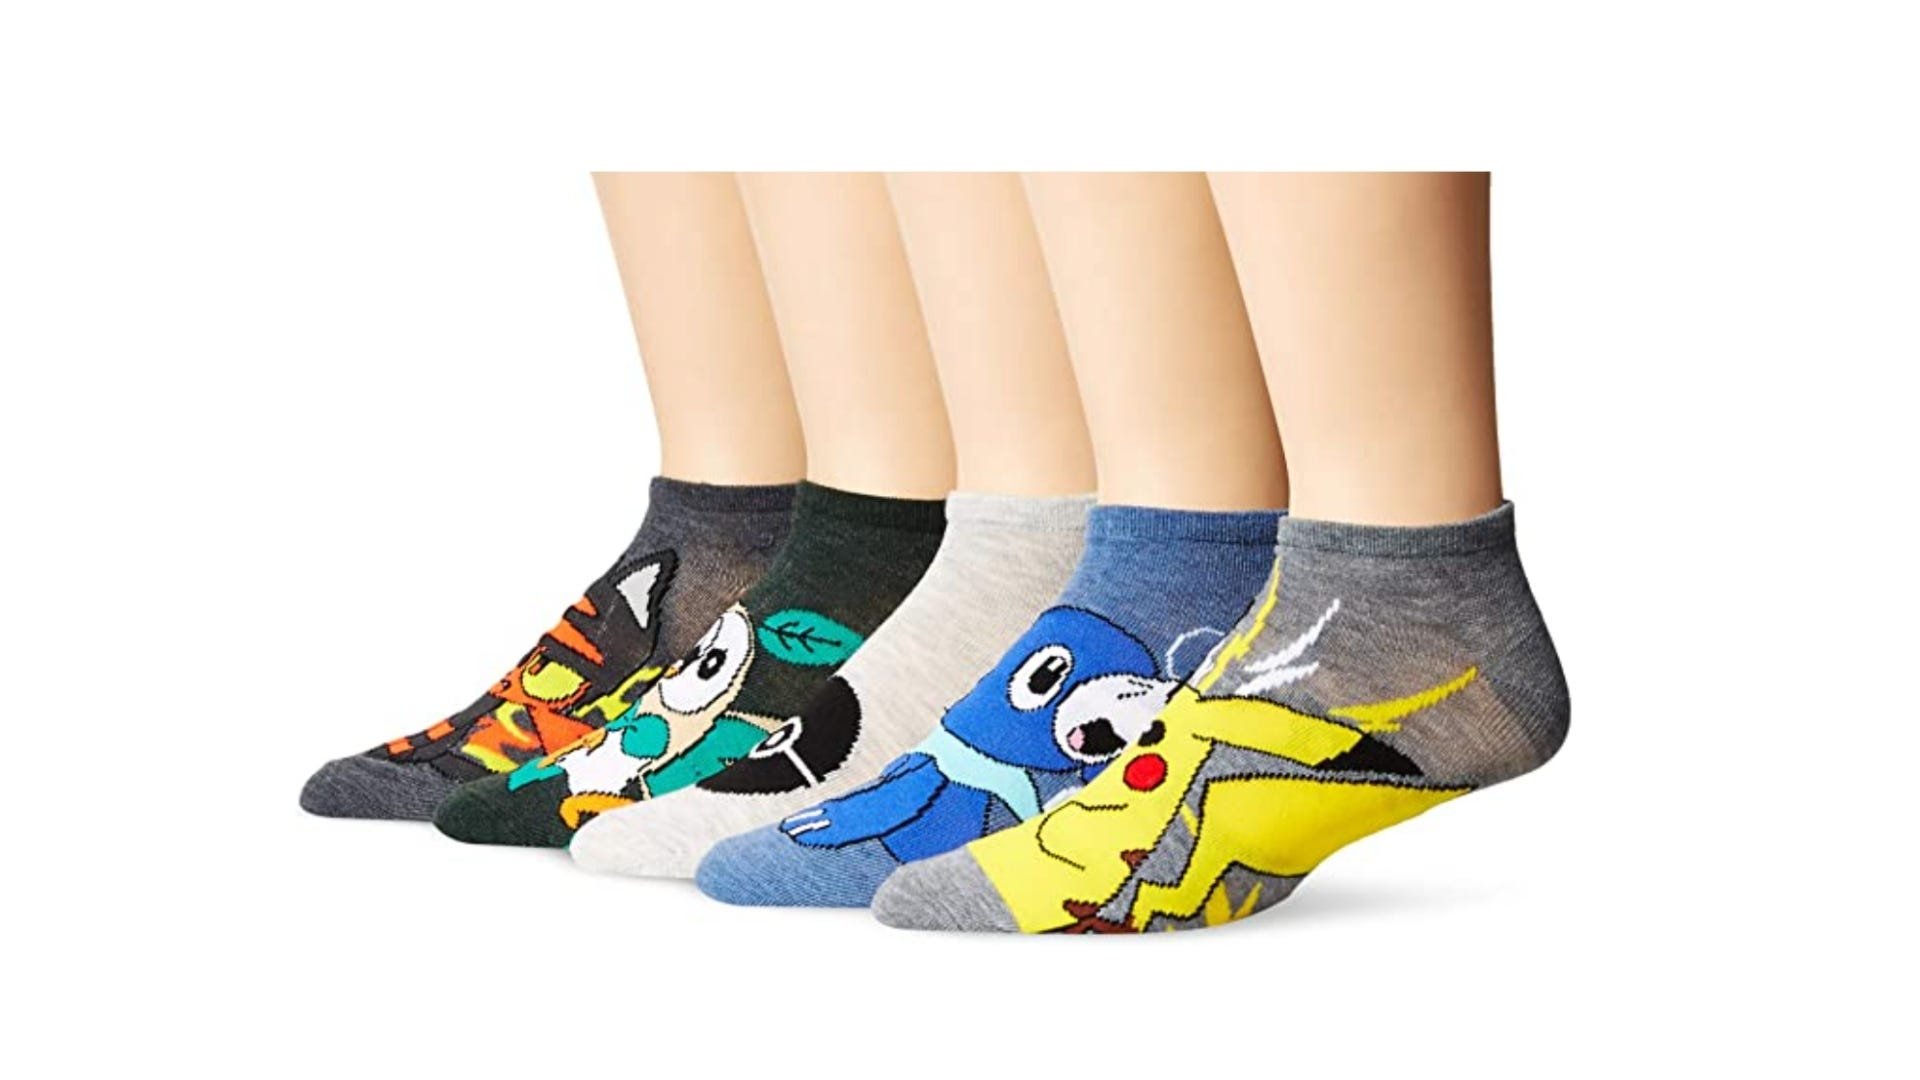 Five pairs of different Pokemon socks being worn.